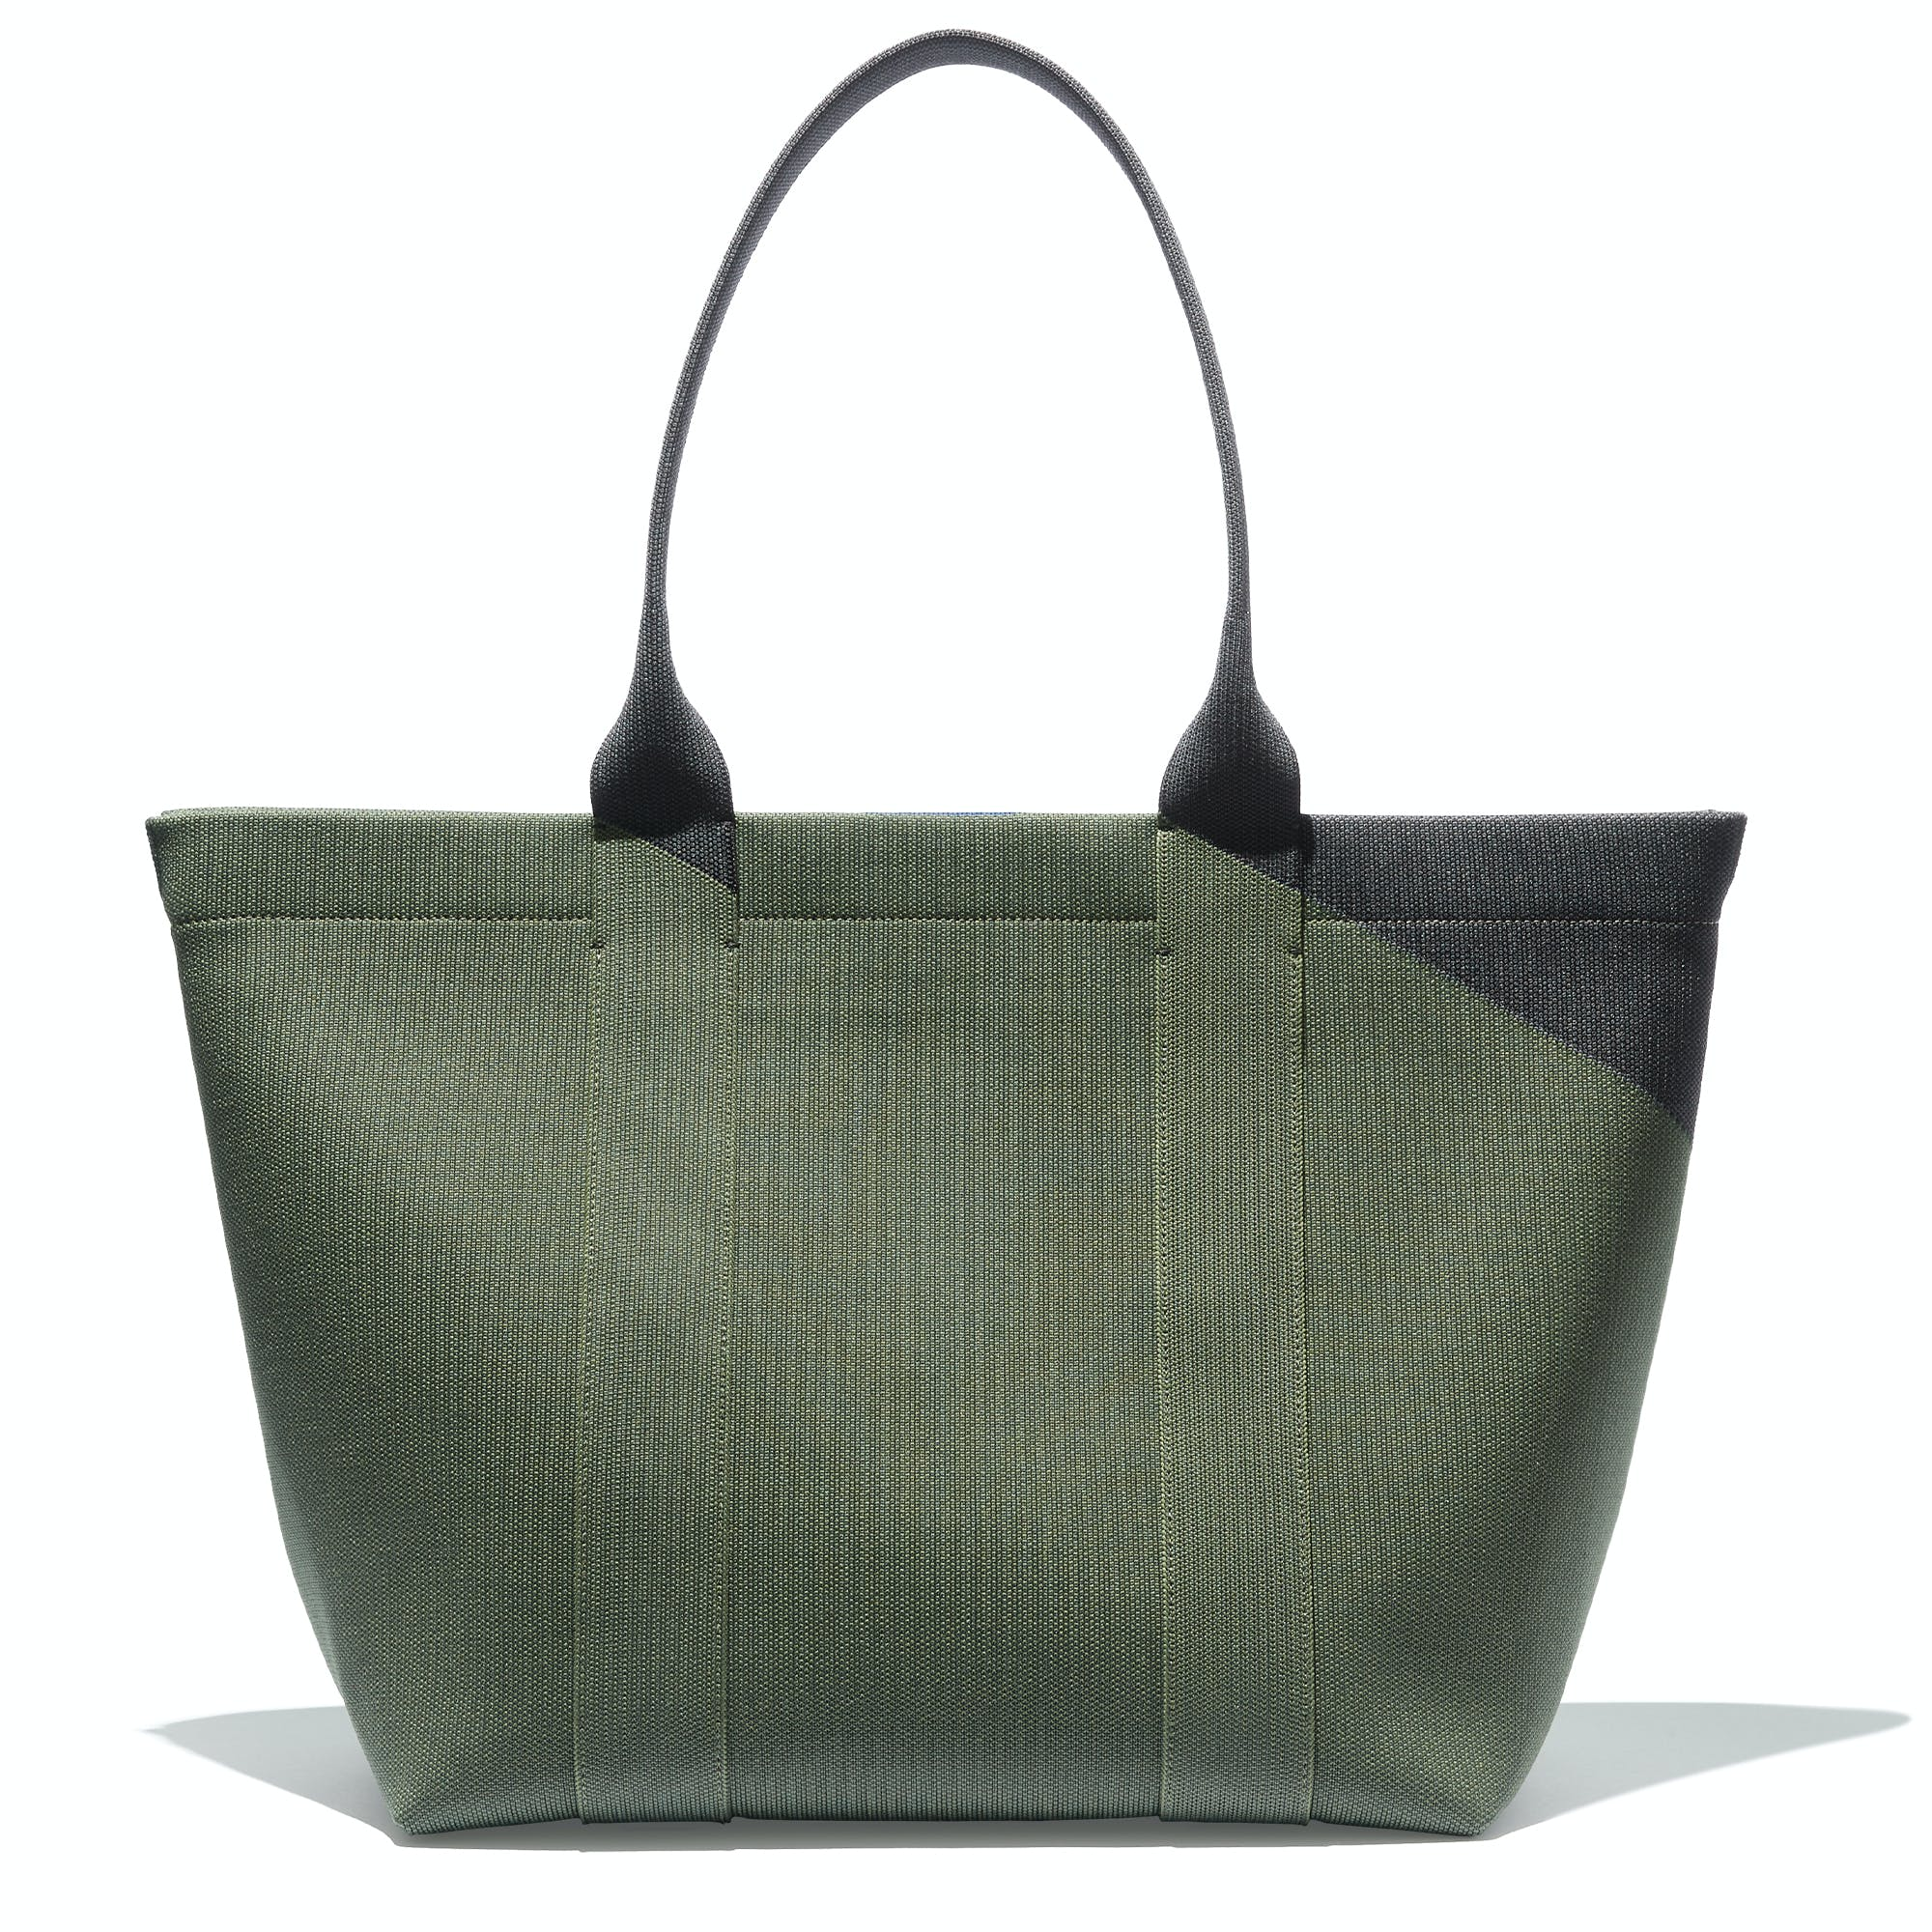 The Essential Tote in Sage Green shown from the front.